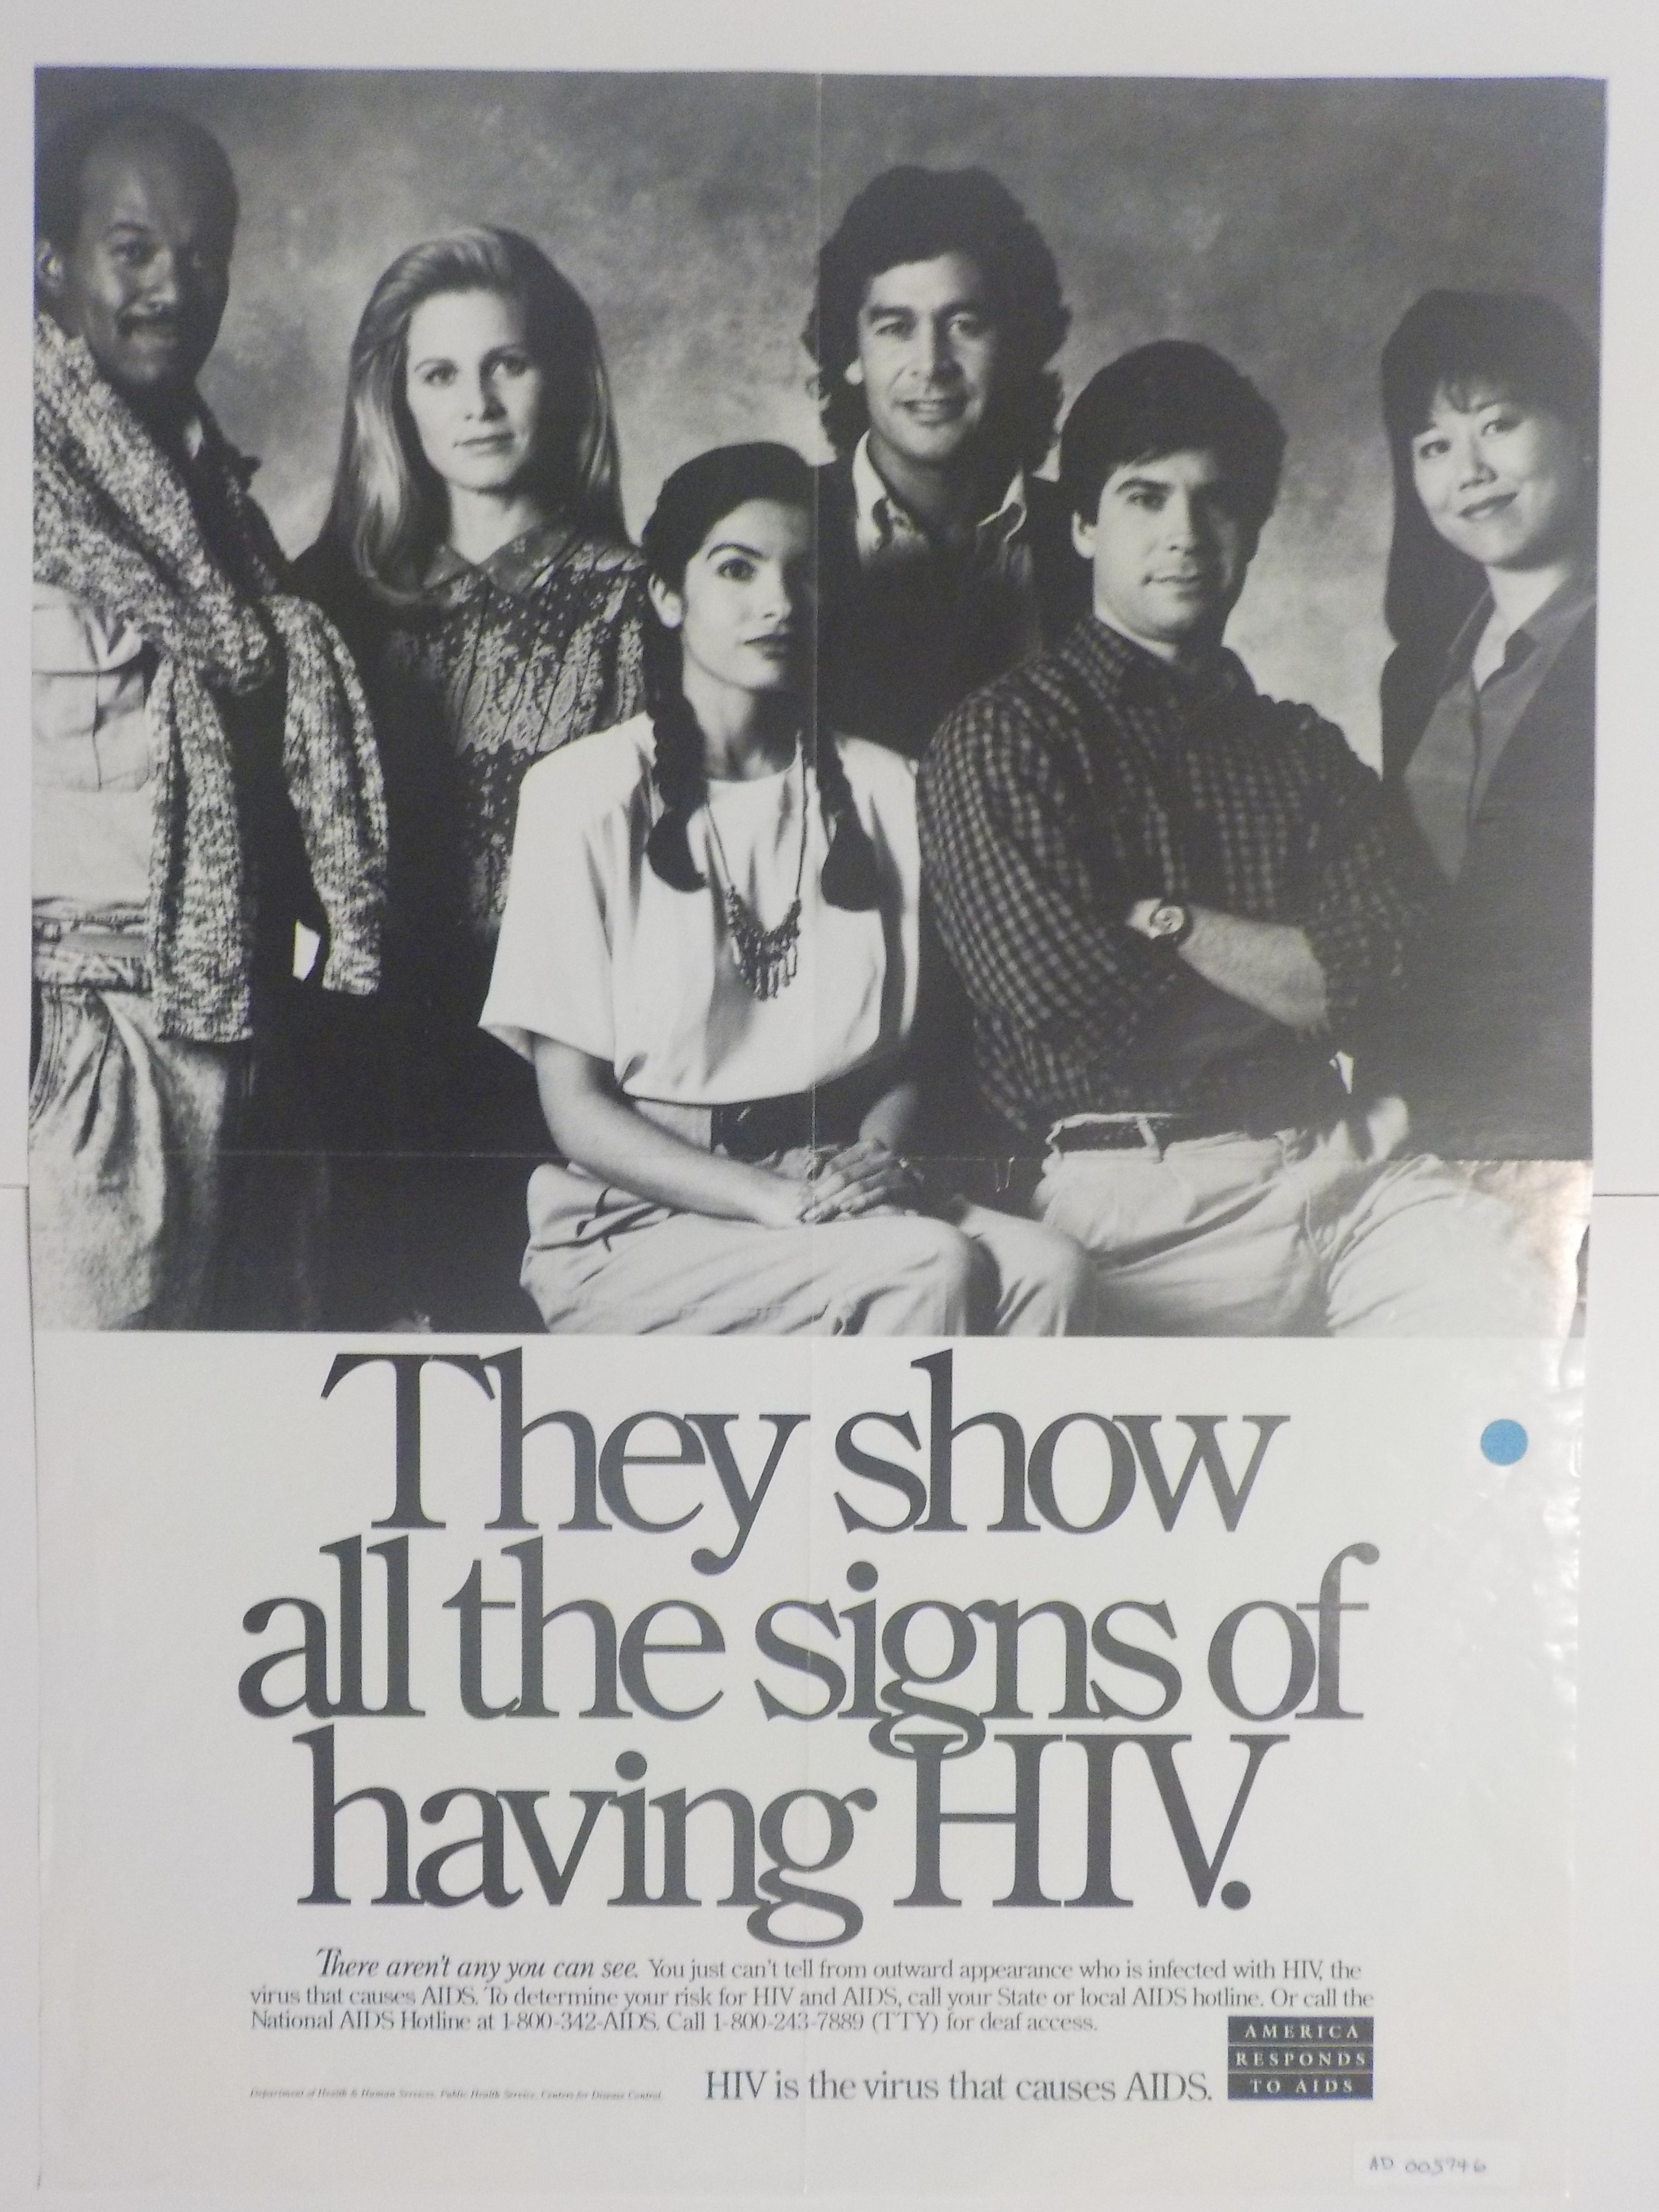 They show all the signs of having HIV